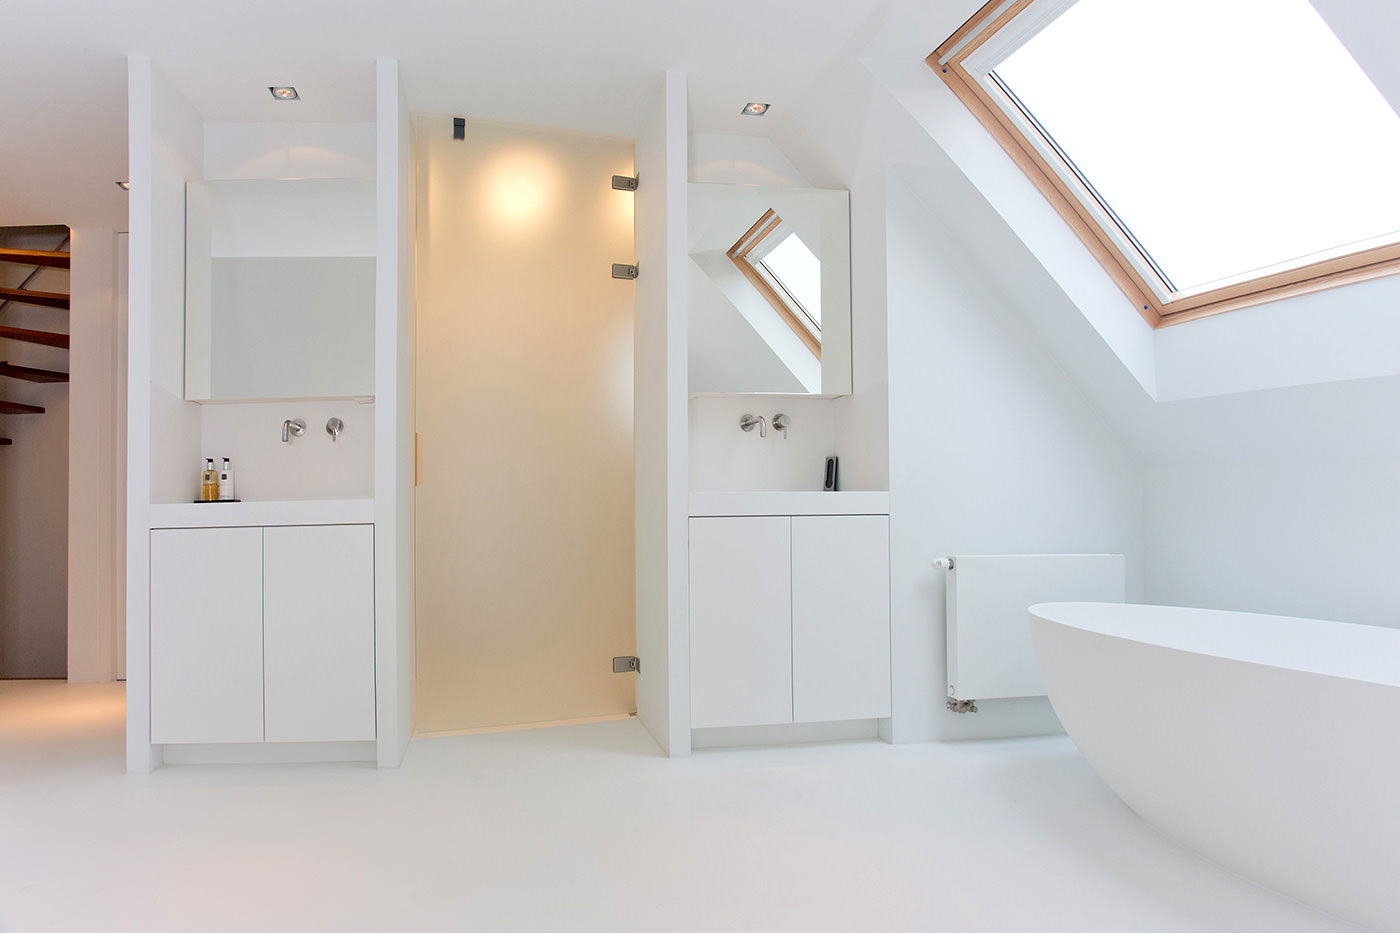 Cocoon-welness-bathroom-corian-bath-tub-solid-bath-solid-surface-bath-tub-spa-room